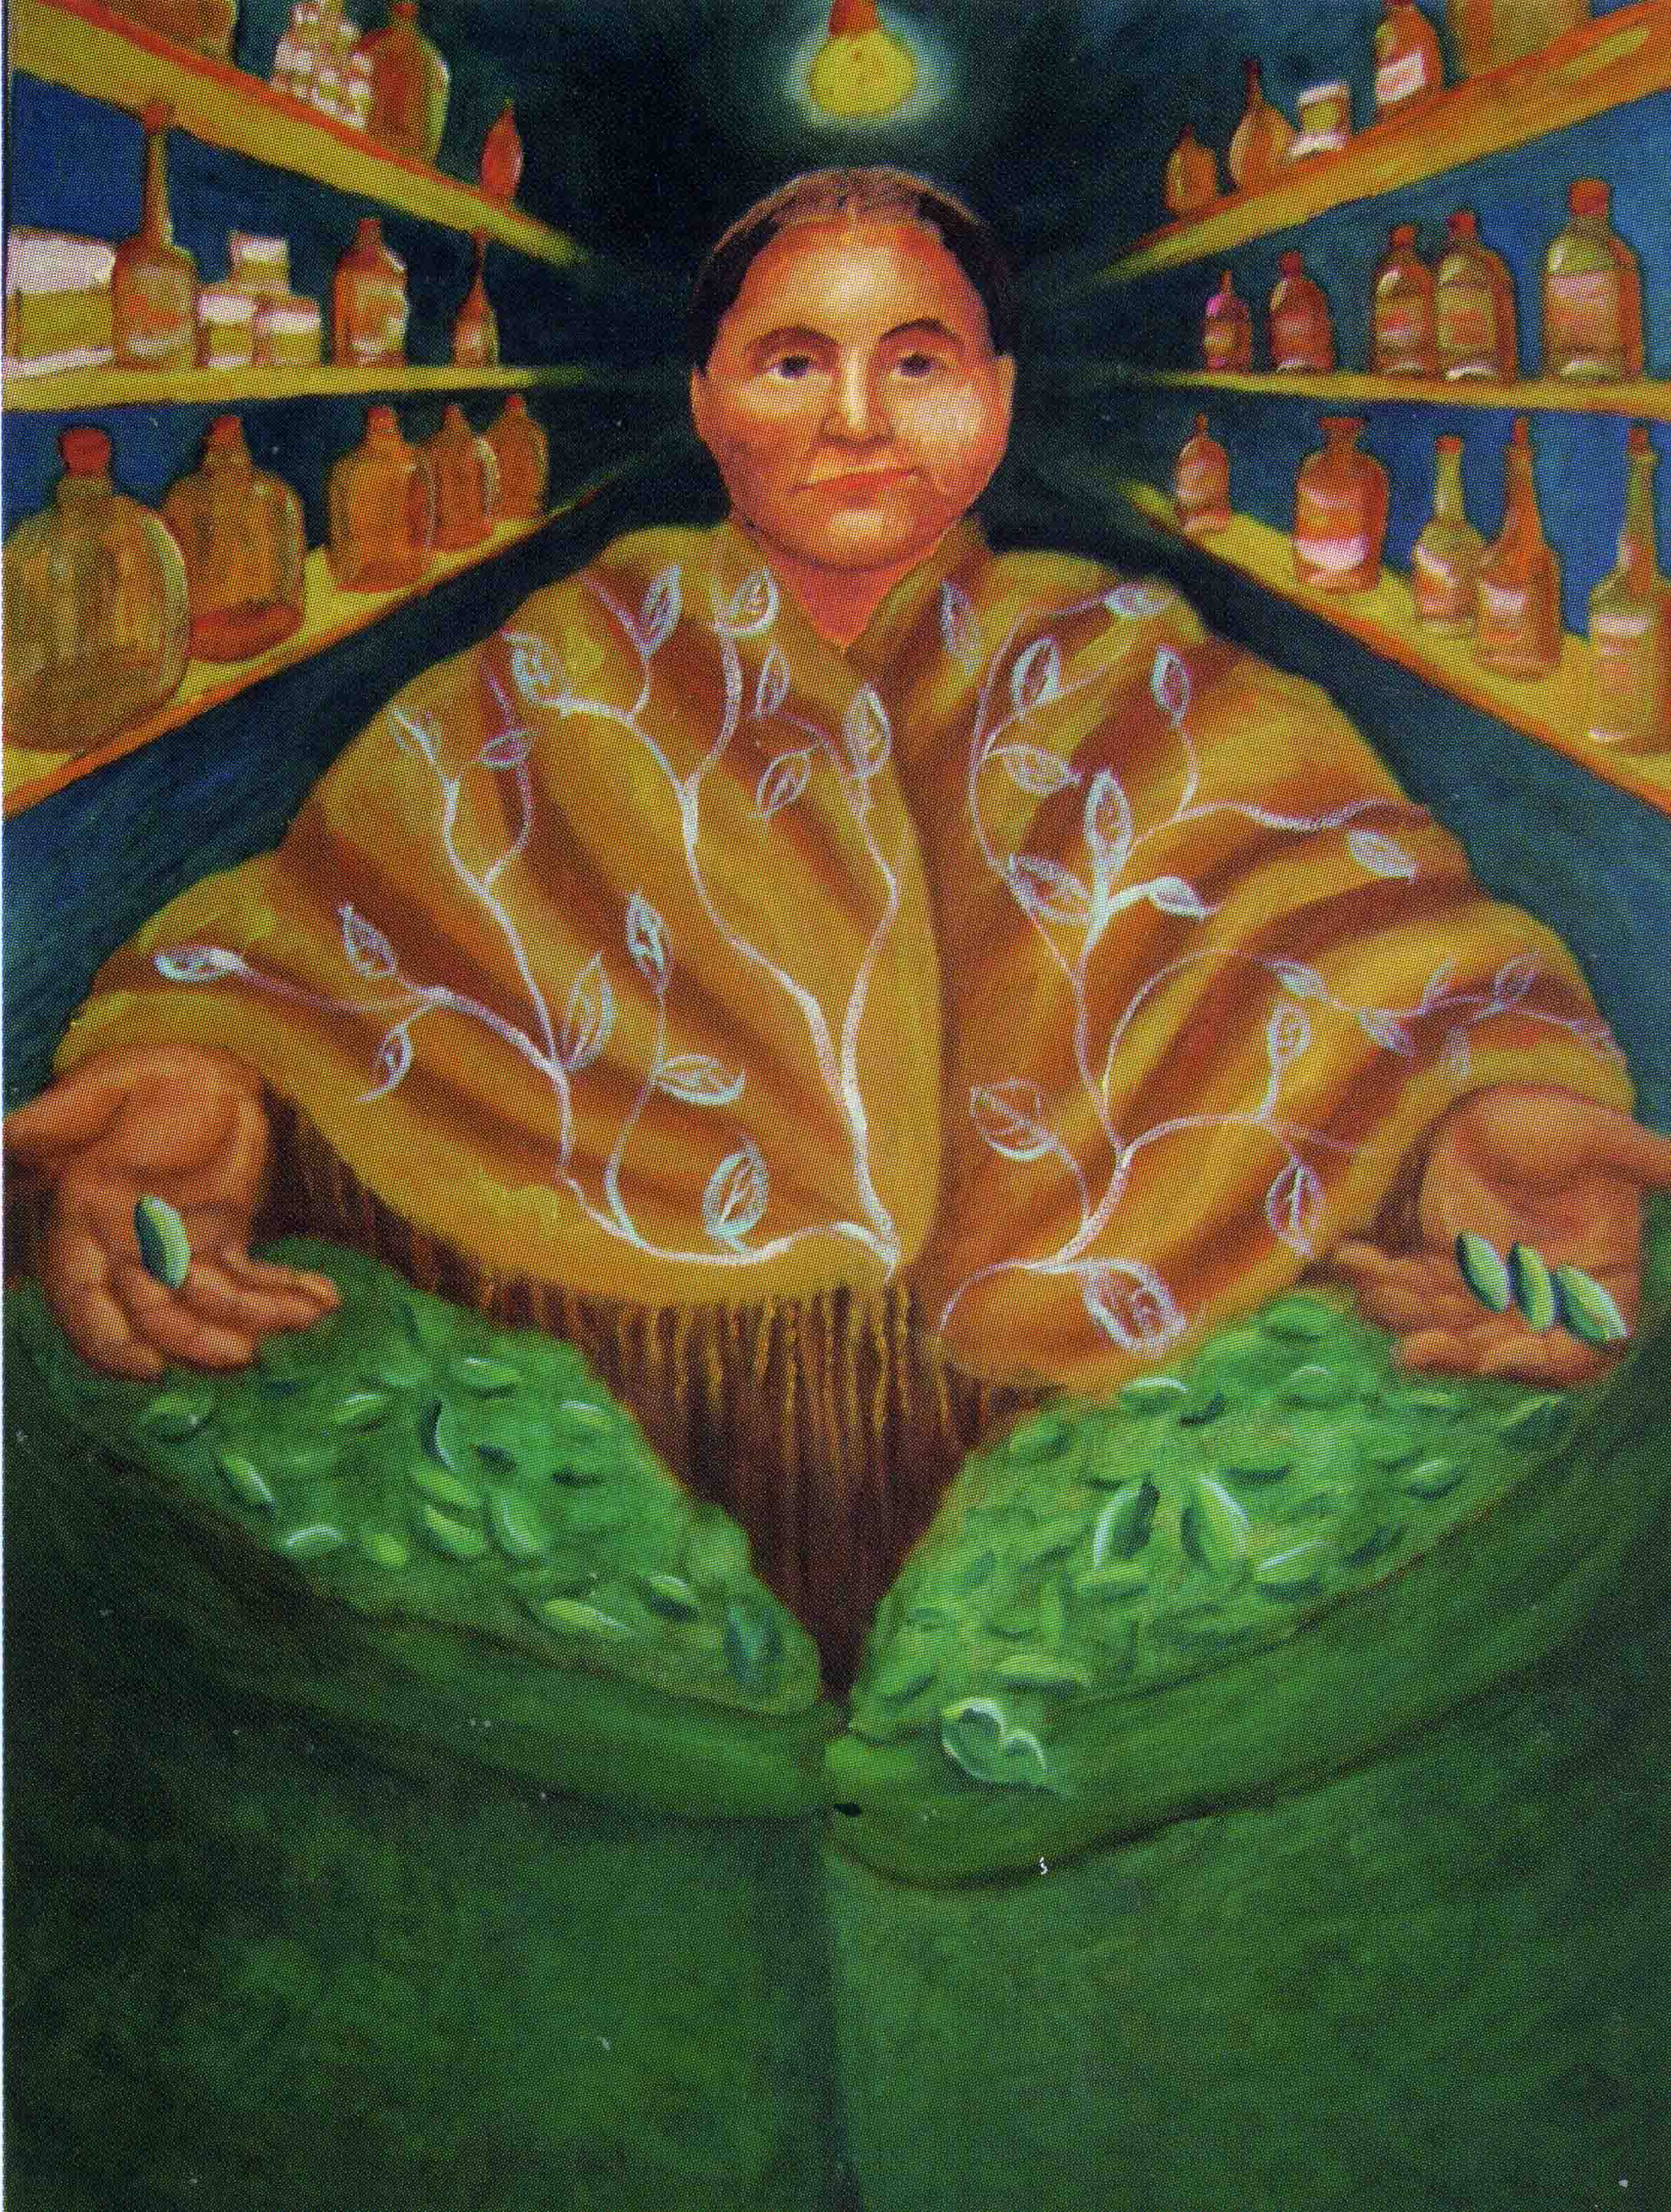 Coca Vendor (oil                                 painting by Lynette Yetter)